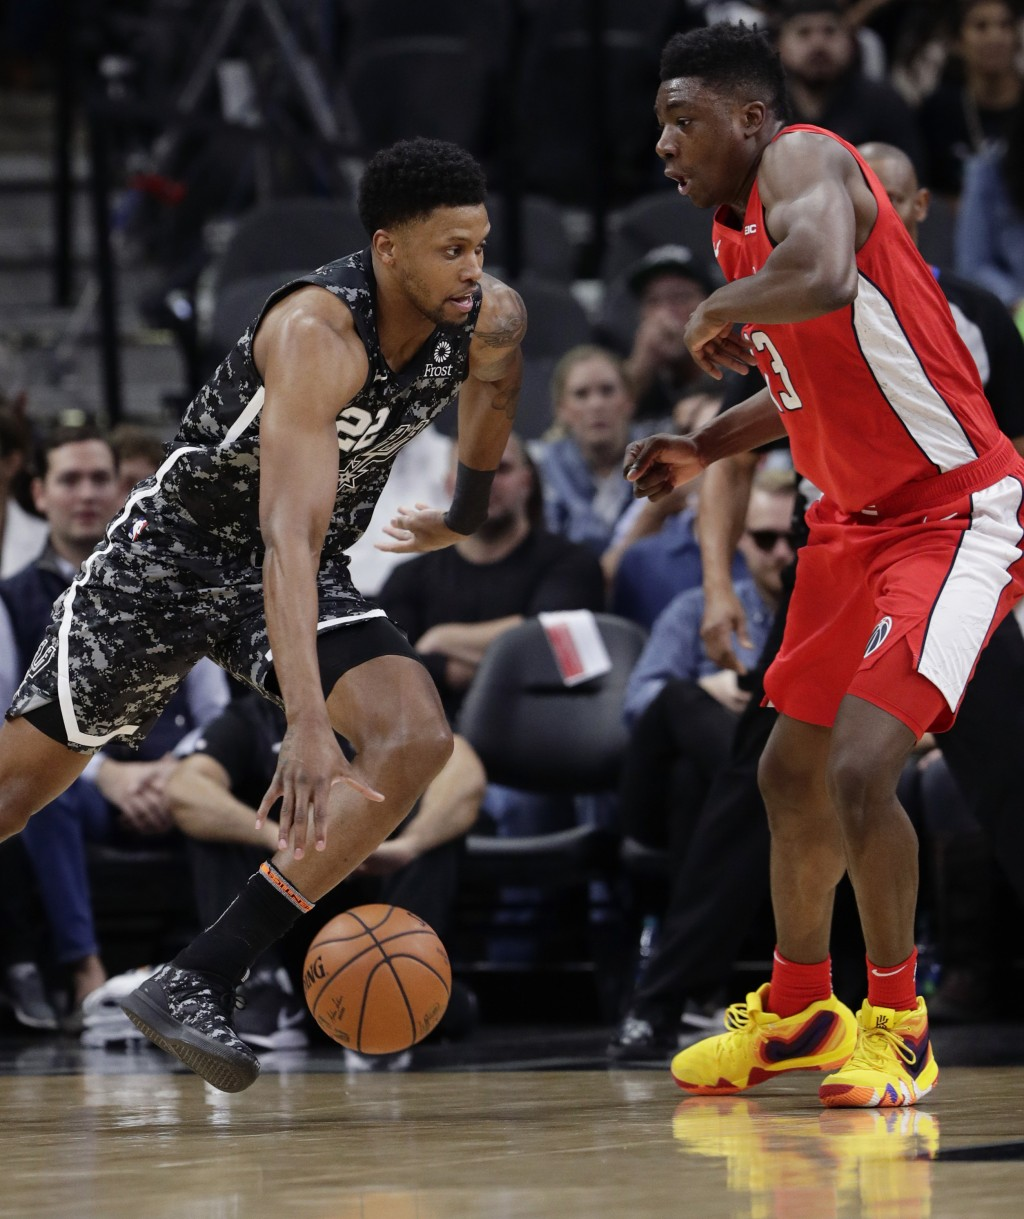 San Antonio Spurs forward Rudy Gay (22) drives around Washington Wizards center Thomas Bryant (13) during the first half of an NBA basketball game in ...